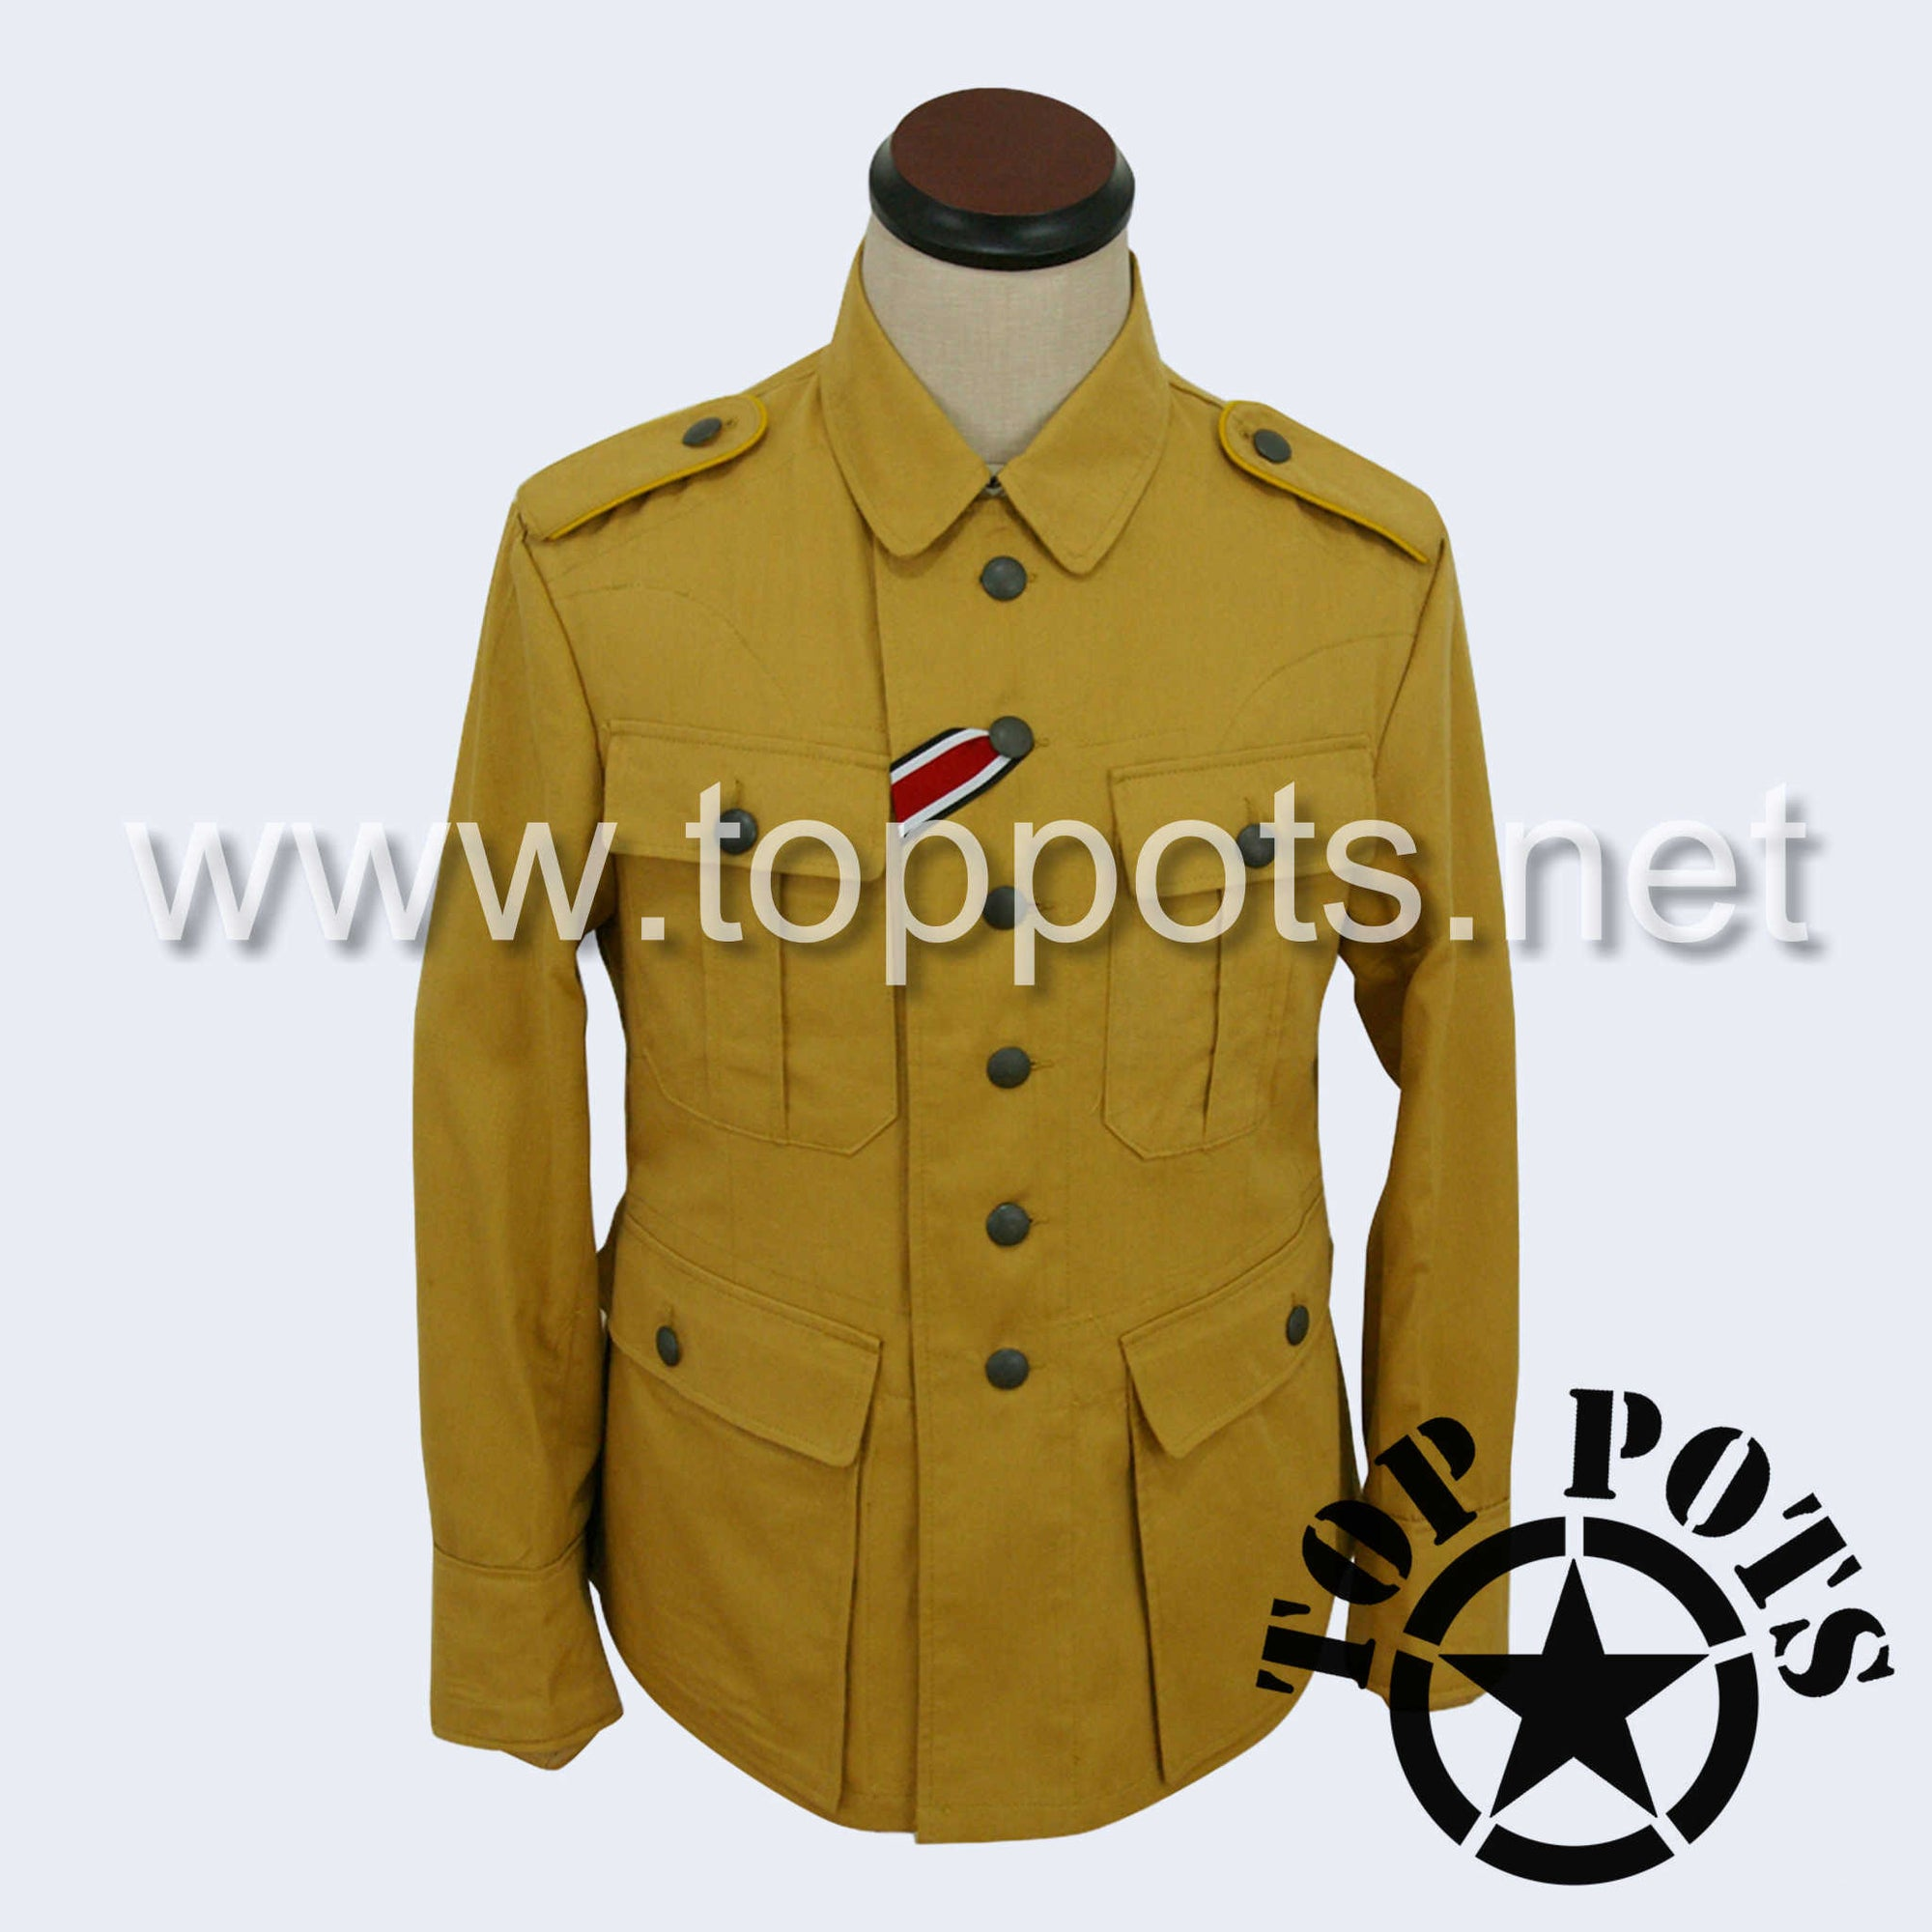 WWII German Luftwaffe M1941 DAK Afrika Korps HBT Tropical Enlisted Uniform Jacket - Sand Khaki